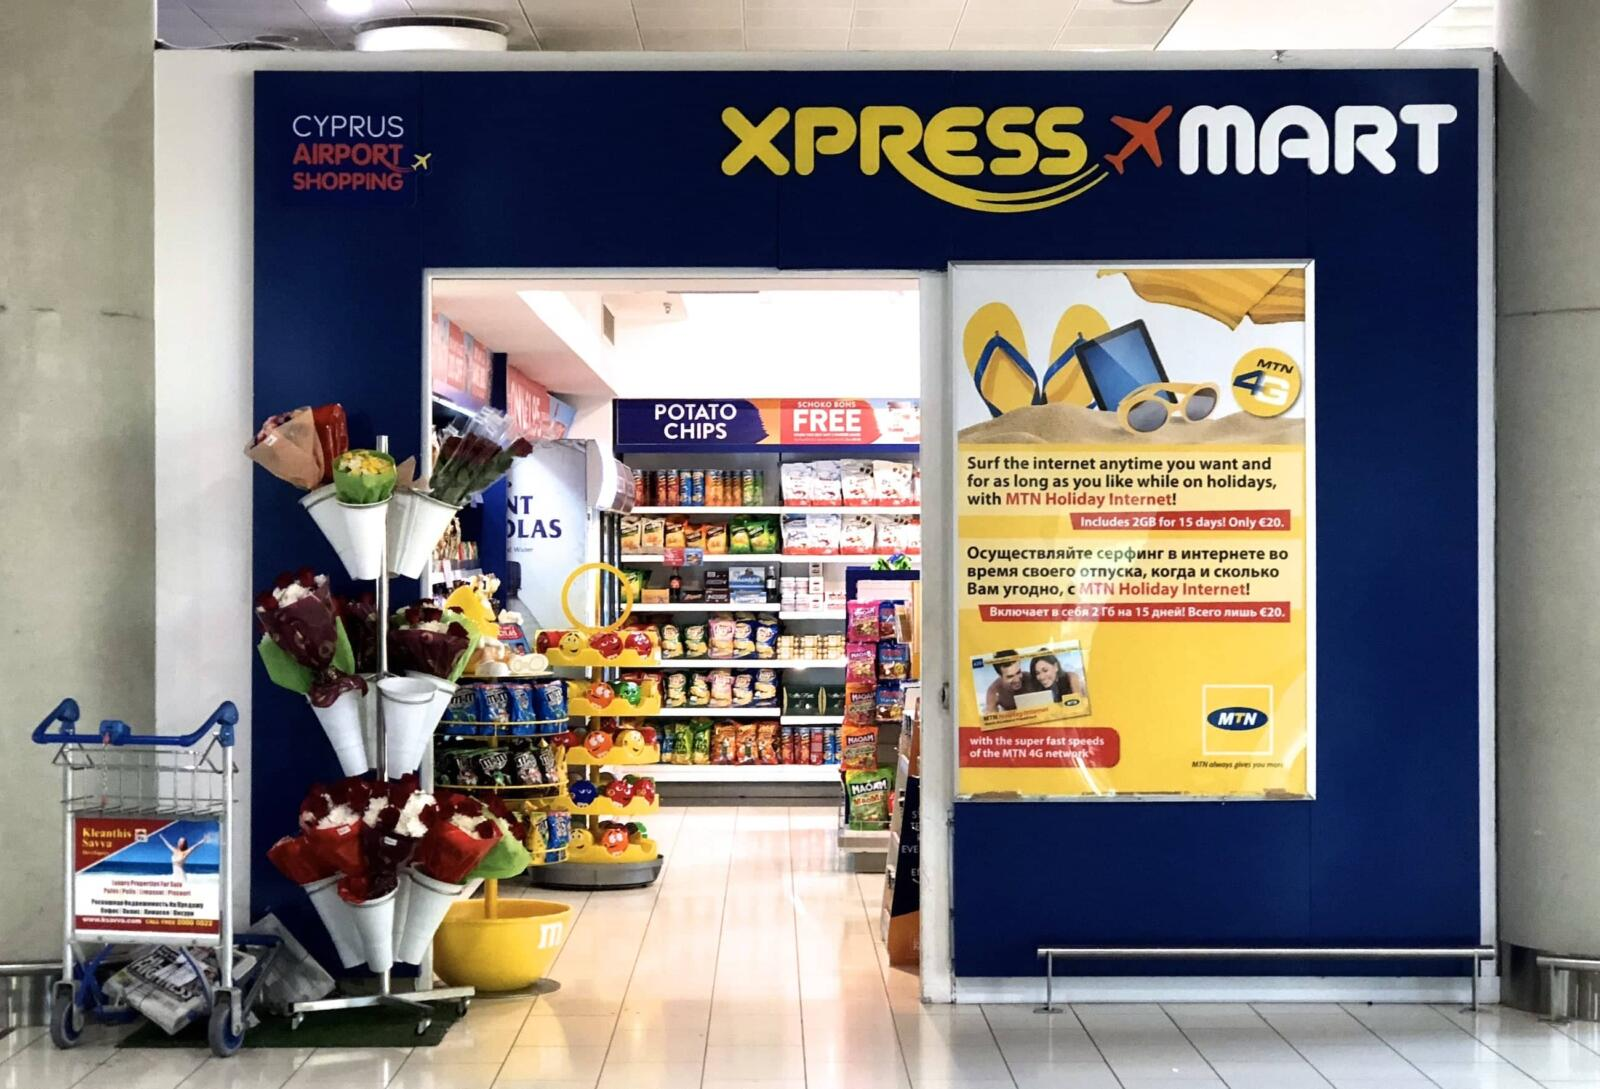 The Xpress Mart of Larnaca Airport